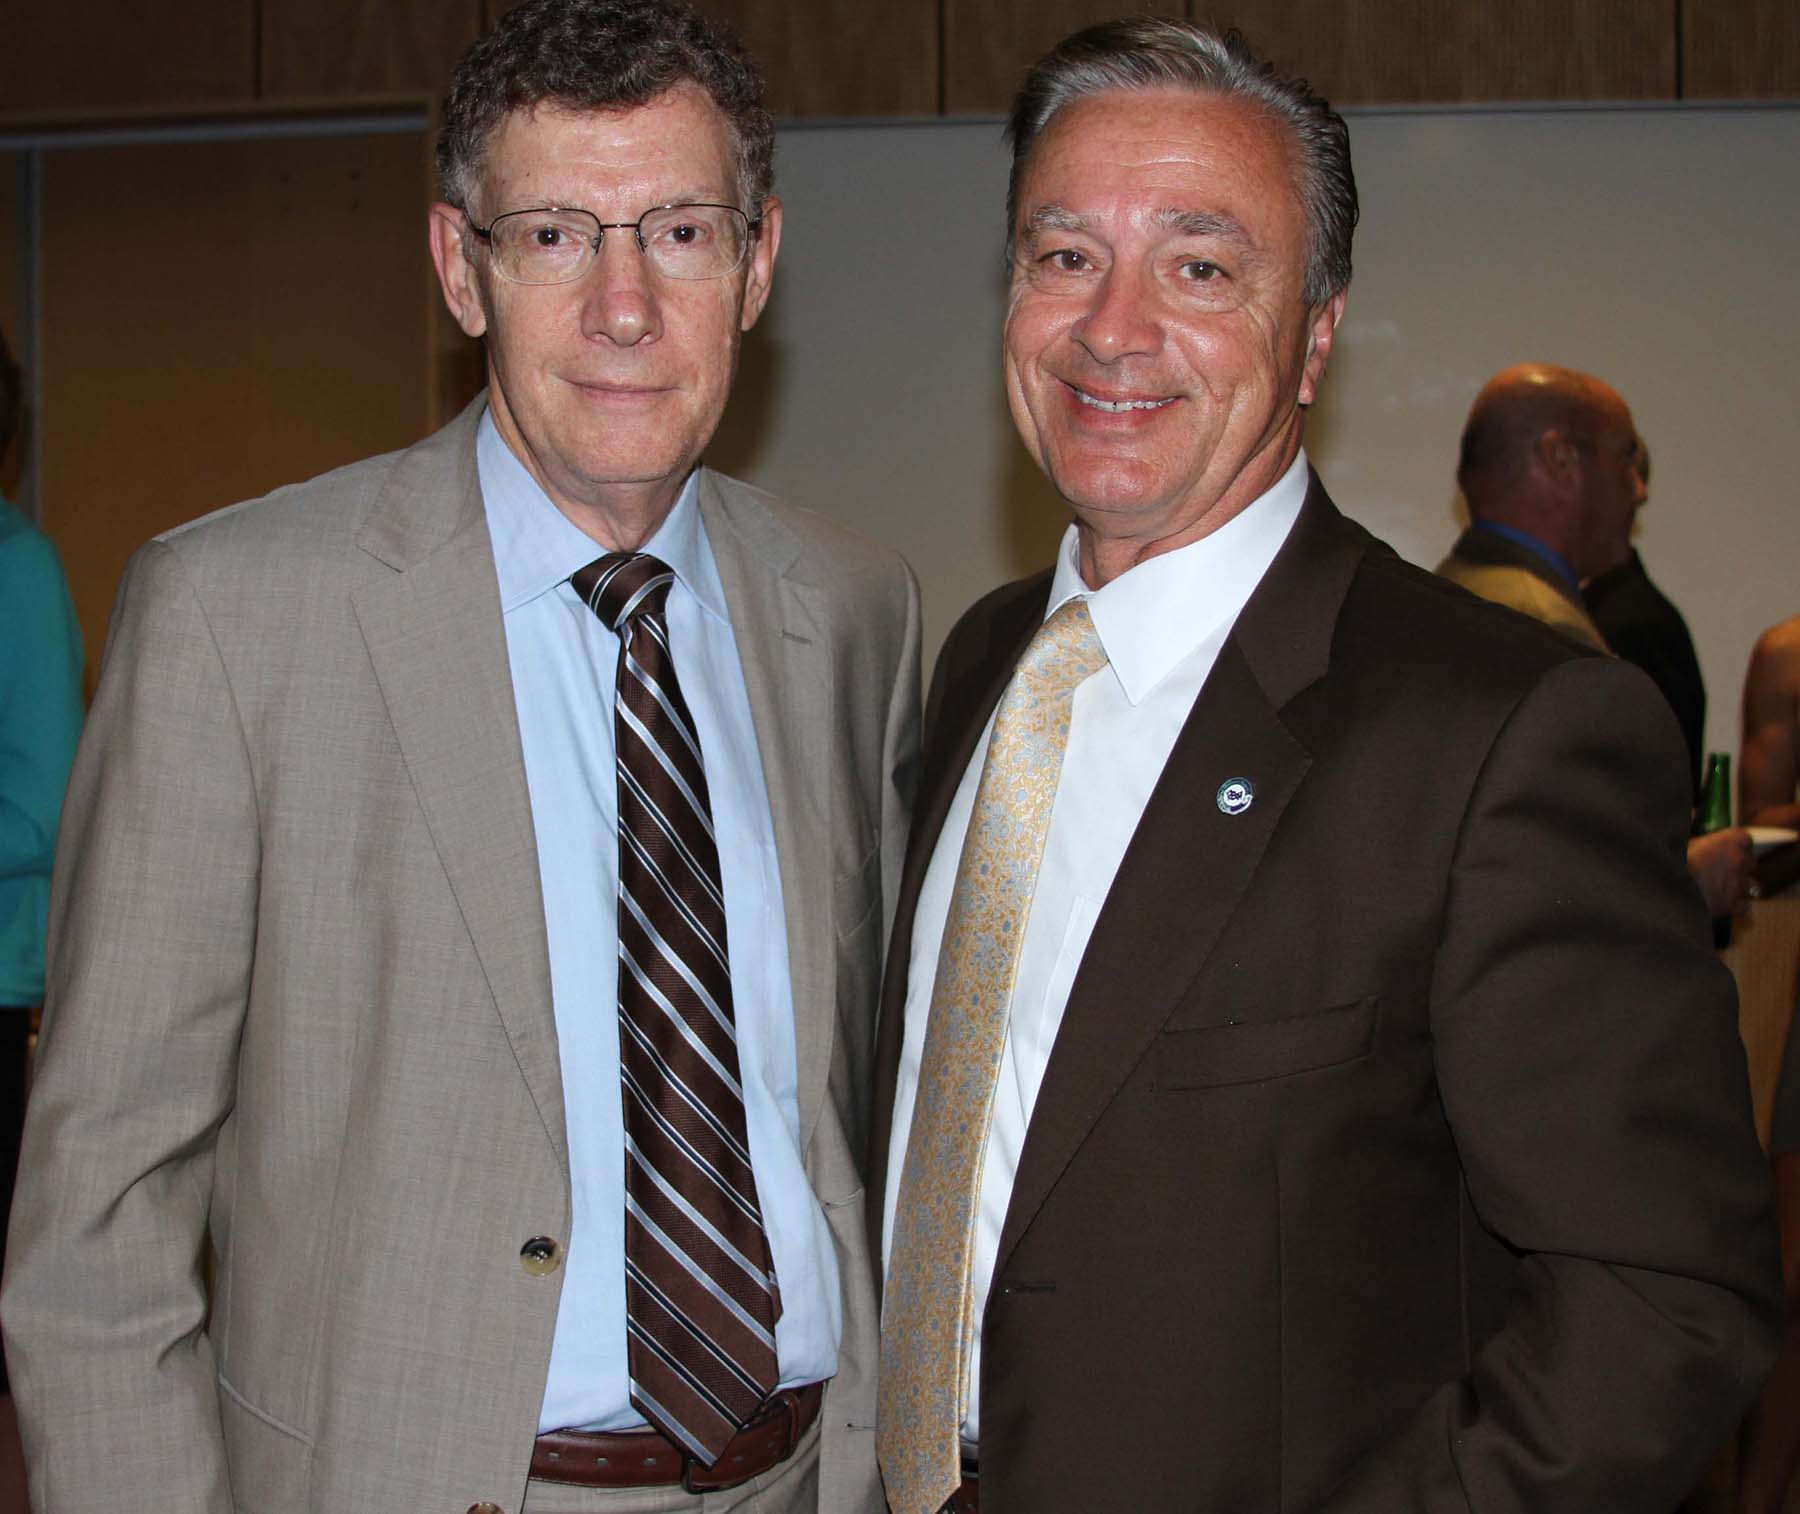 Dr. Allen Weiss and Dr. Lou Traina